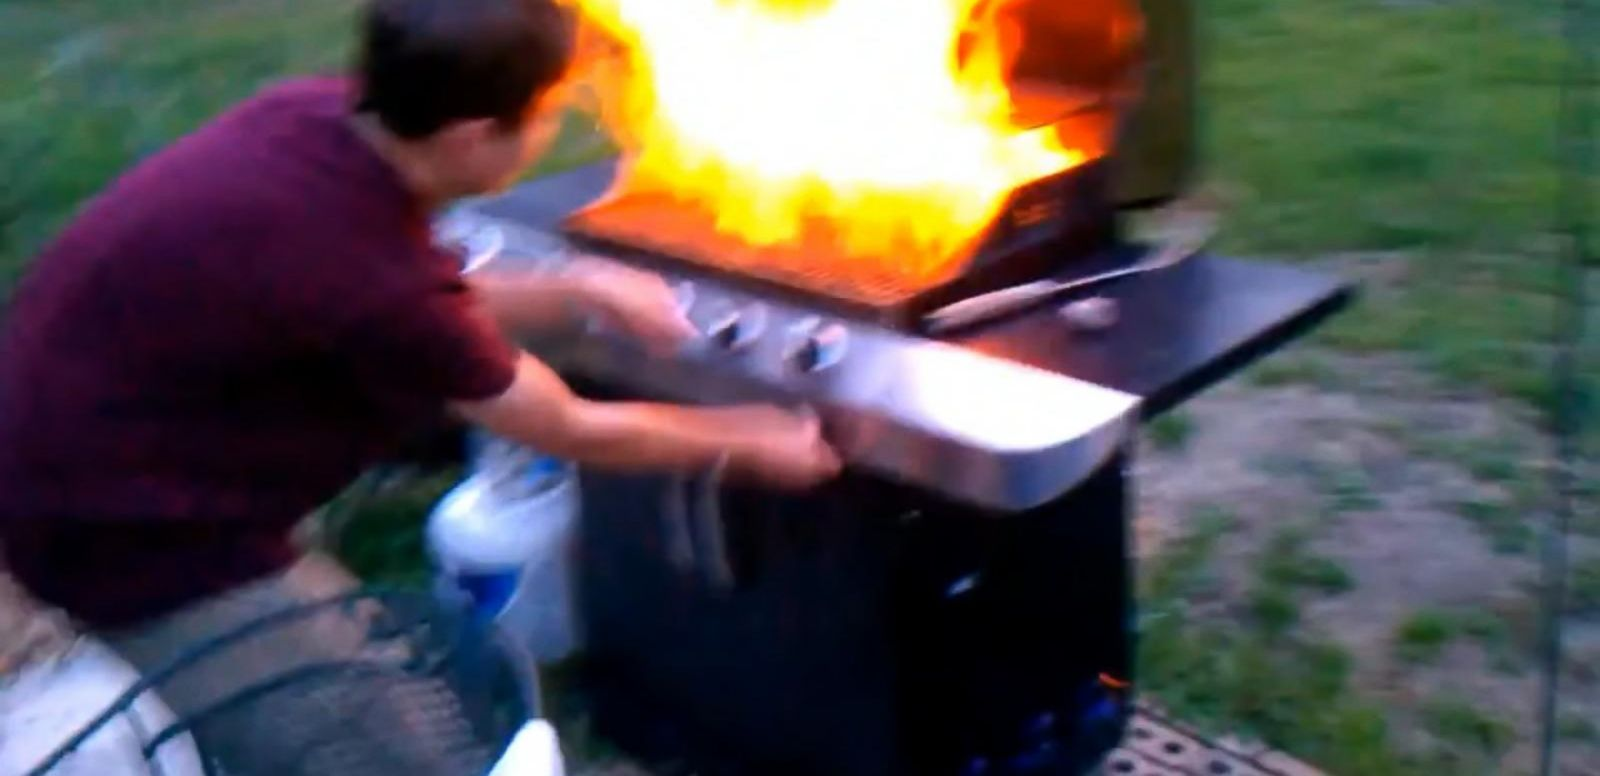 VIDEO: Beware Potential BBQ Threats Before You Start the Grill